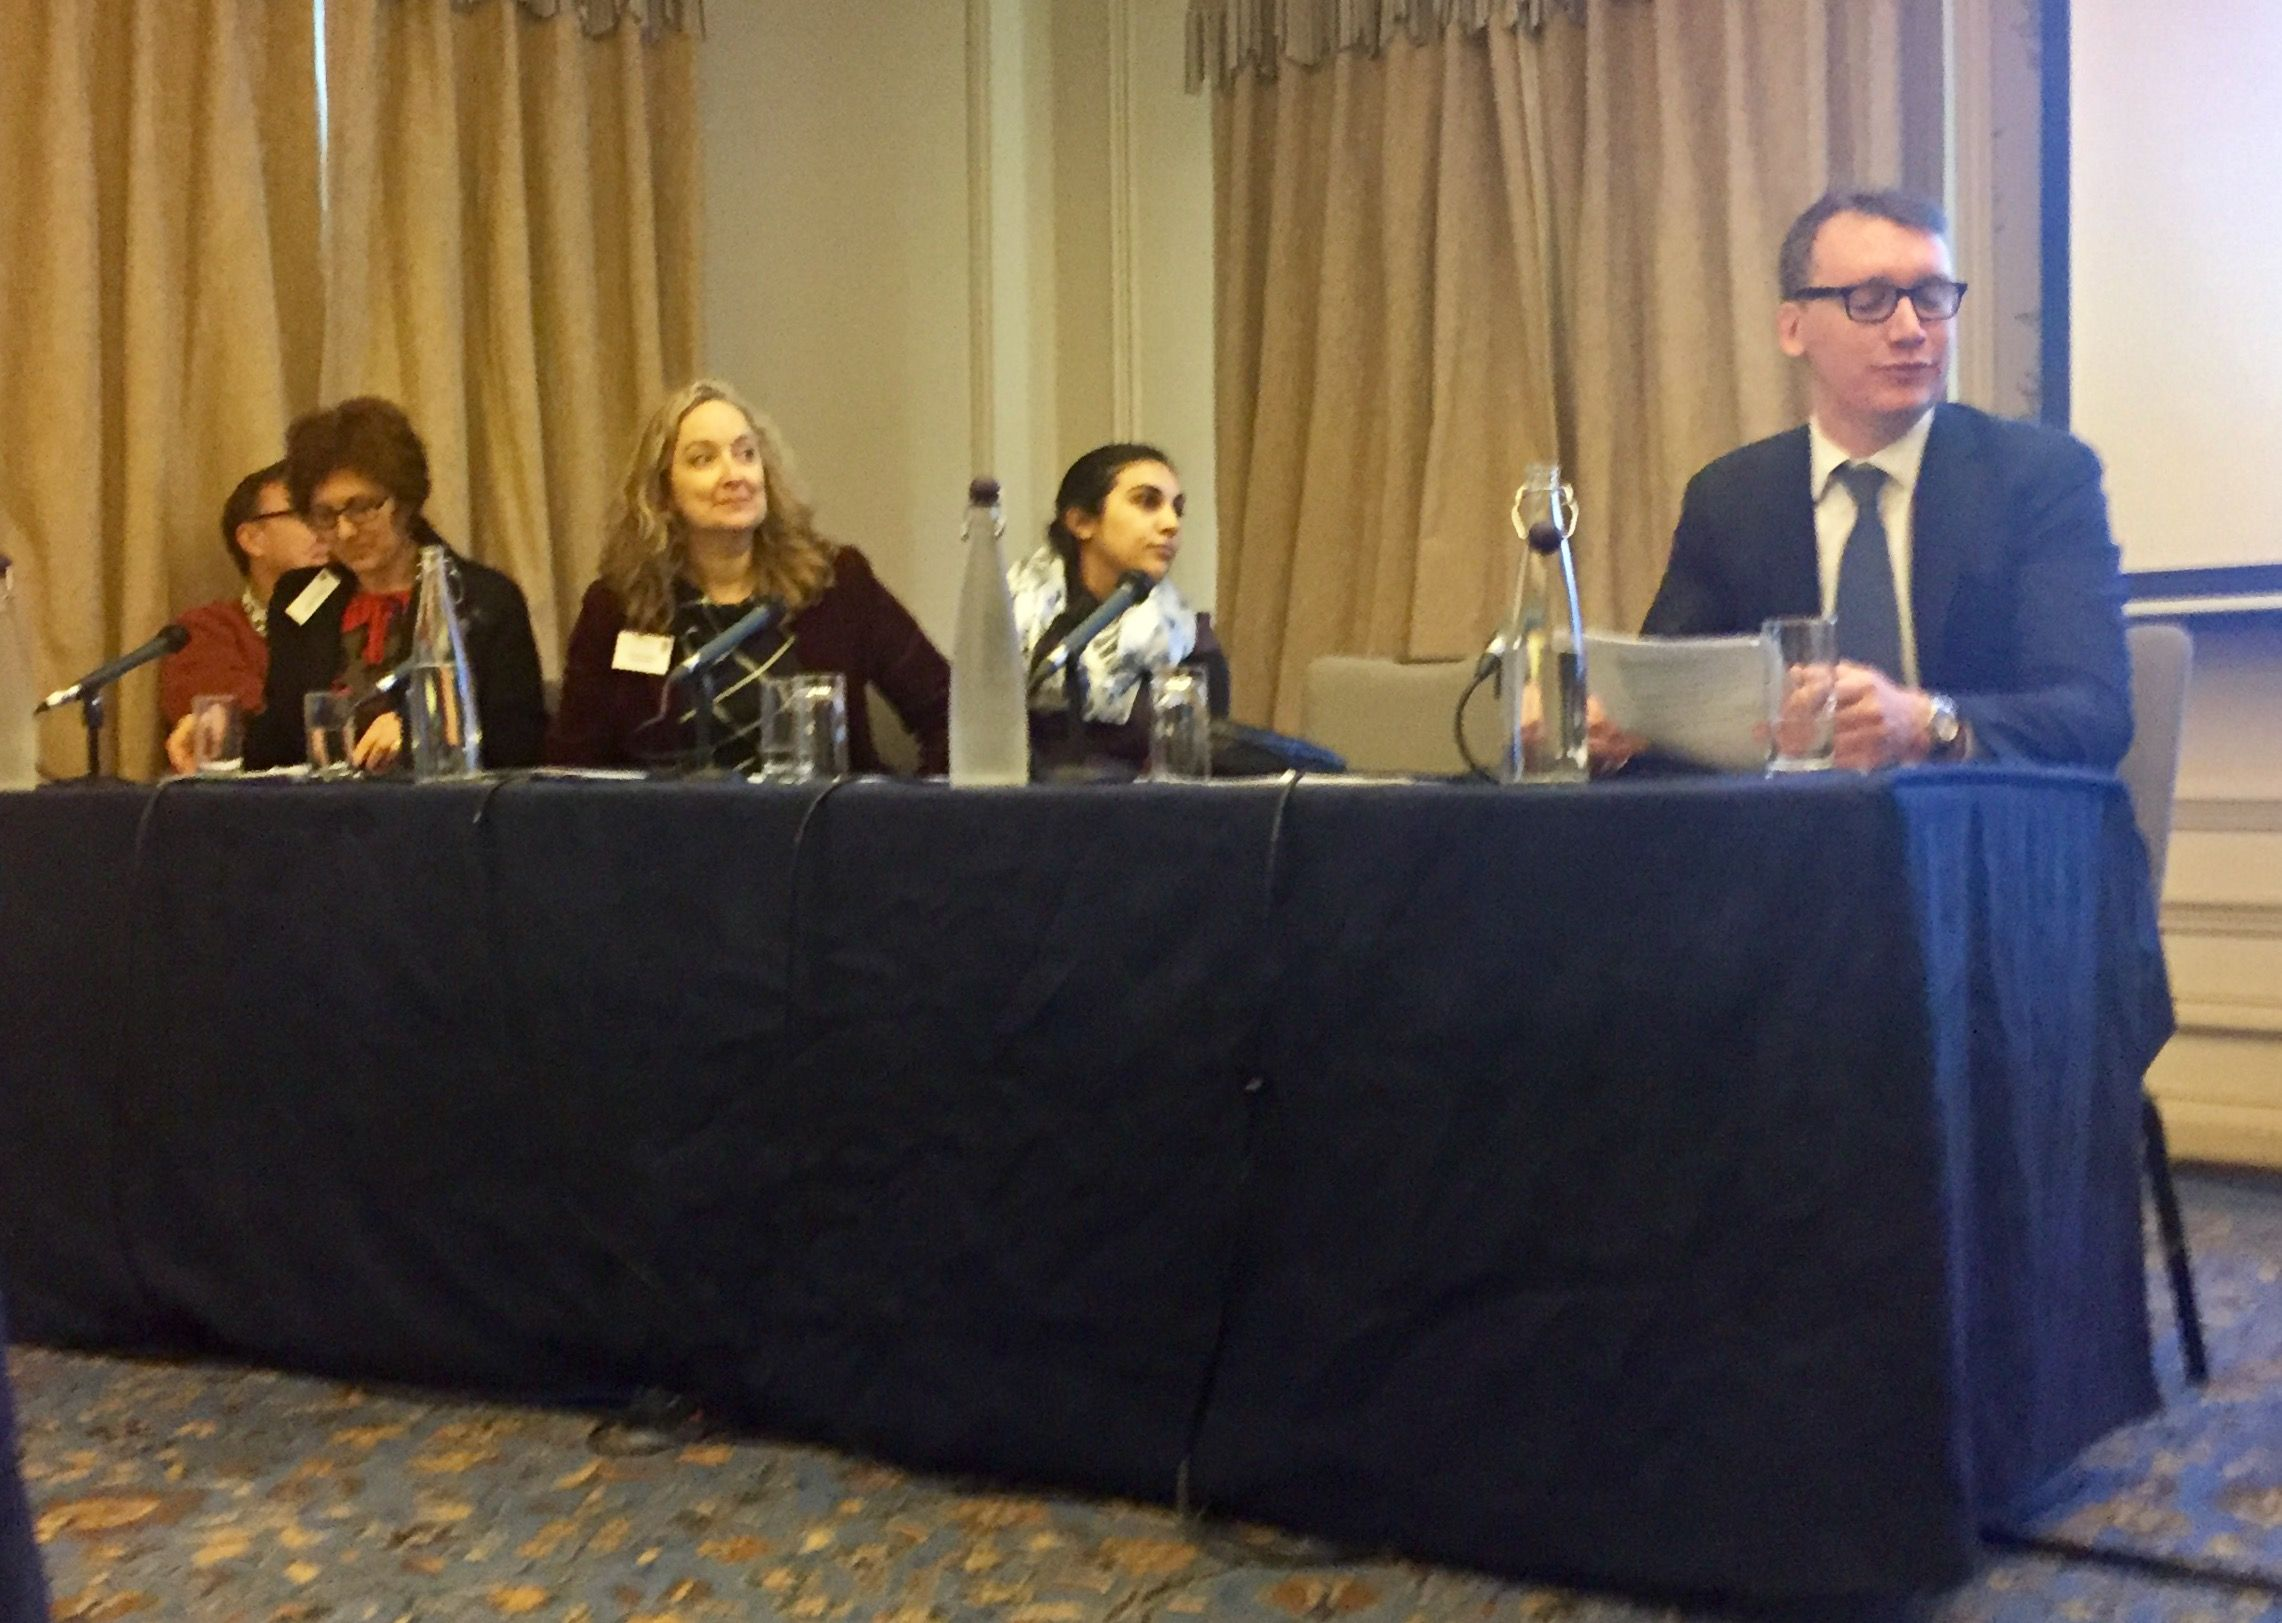 Westminster Media Forum Keynote Seminar: Book publishing and the wider creative market - cross-sector collaboration, copyright and new avenues for growth` @ The Caledonian Club - Hyde Park